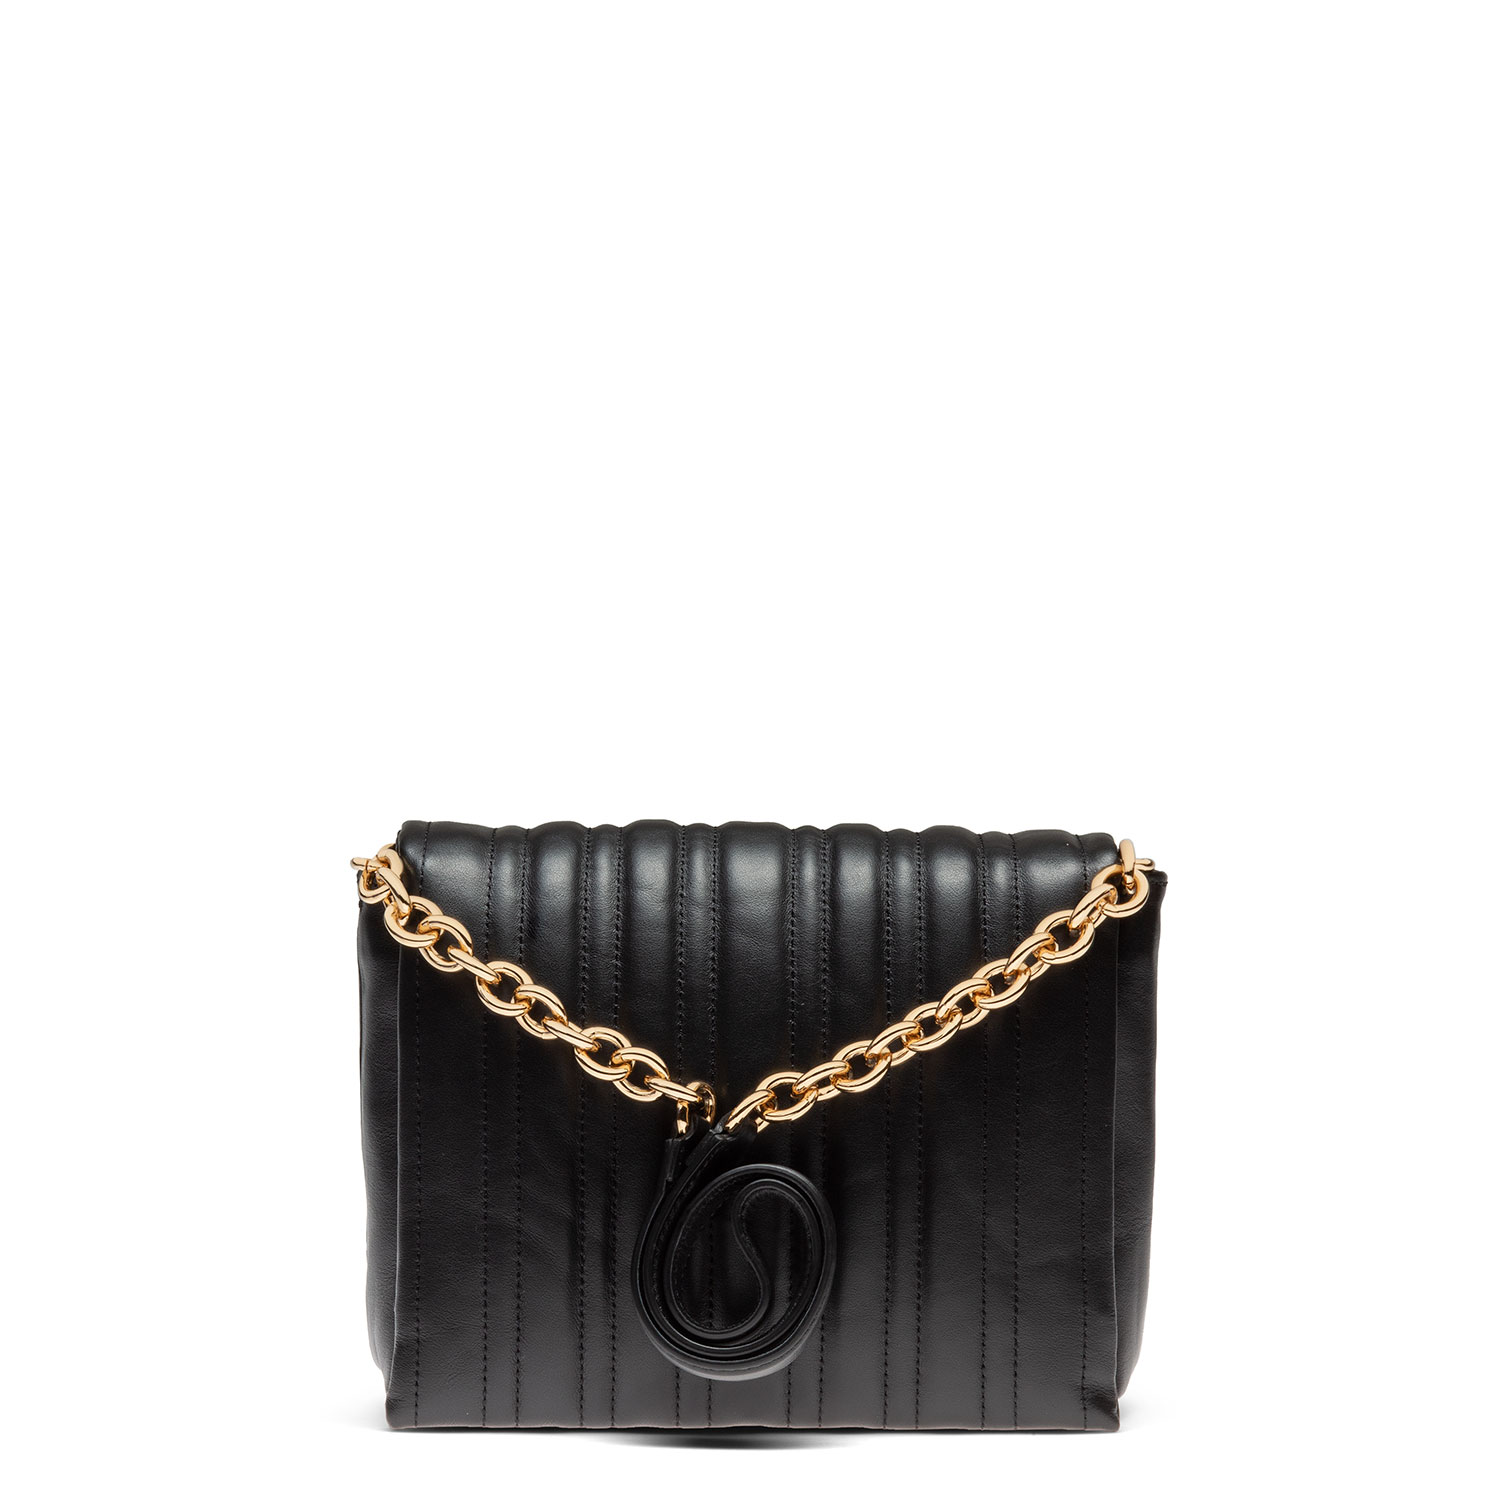 Women's bag PAZOLINI PB-X3590-1